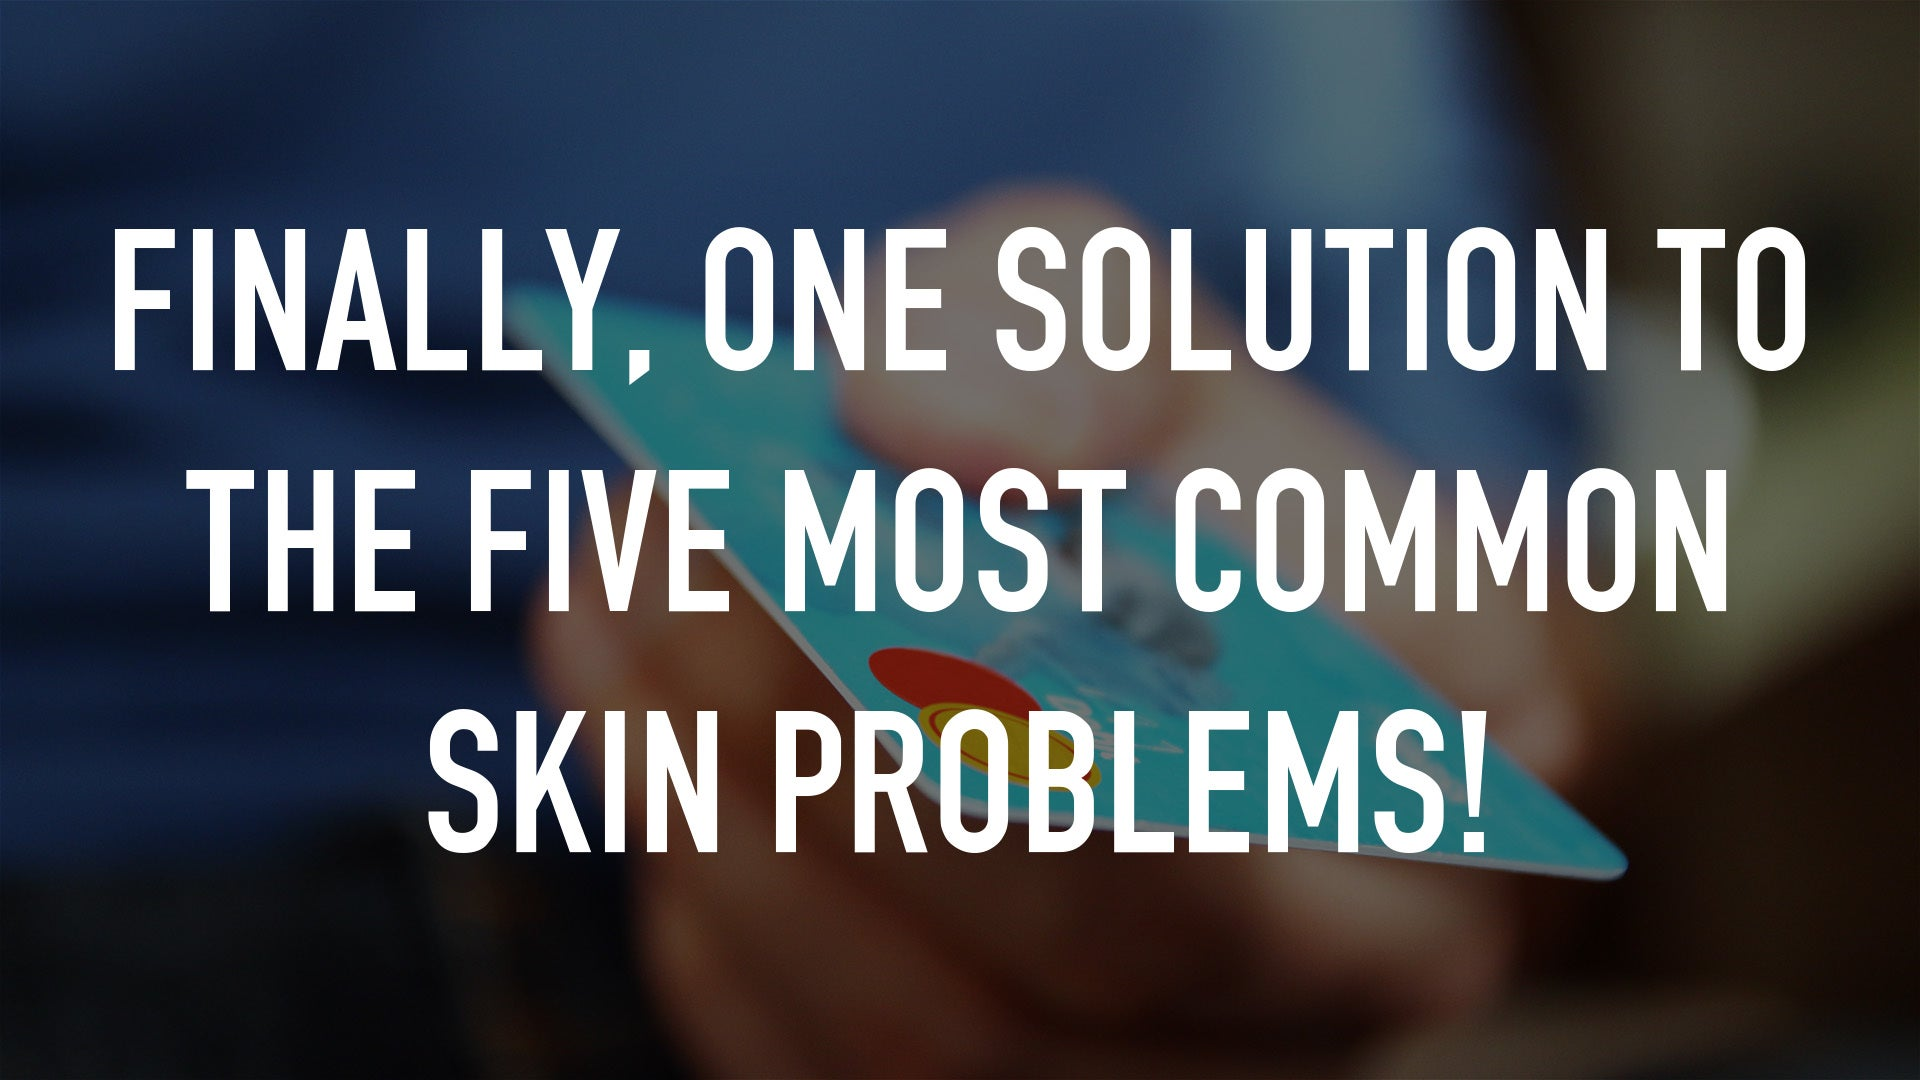 Finally, ONE solution to the FIVE most common skin problems!